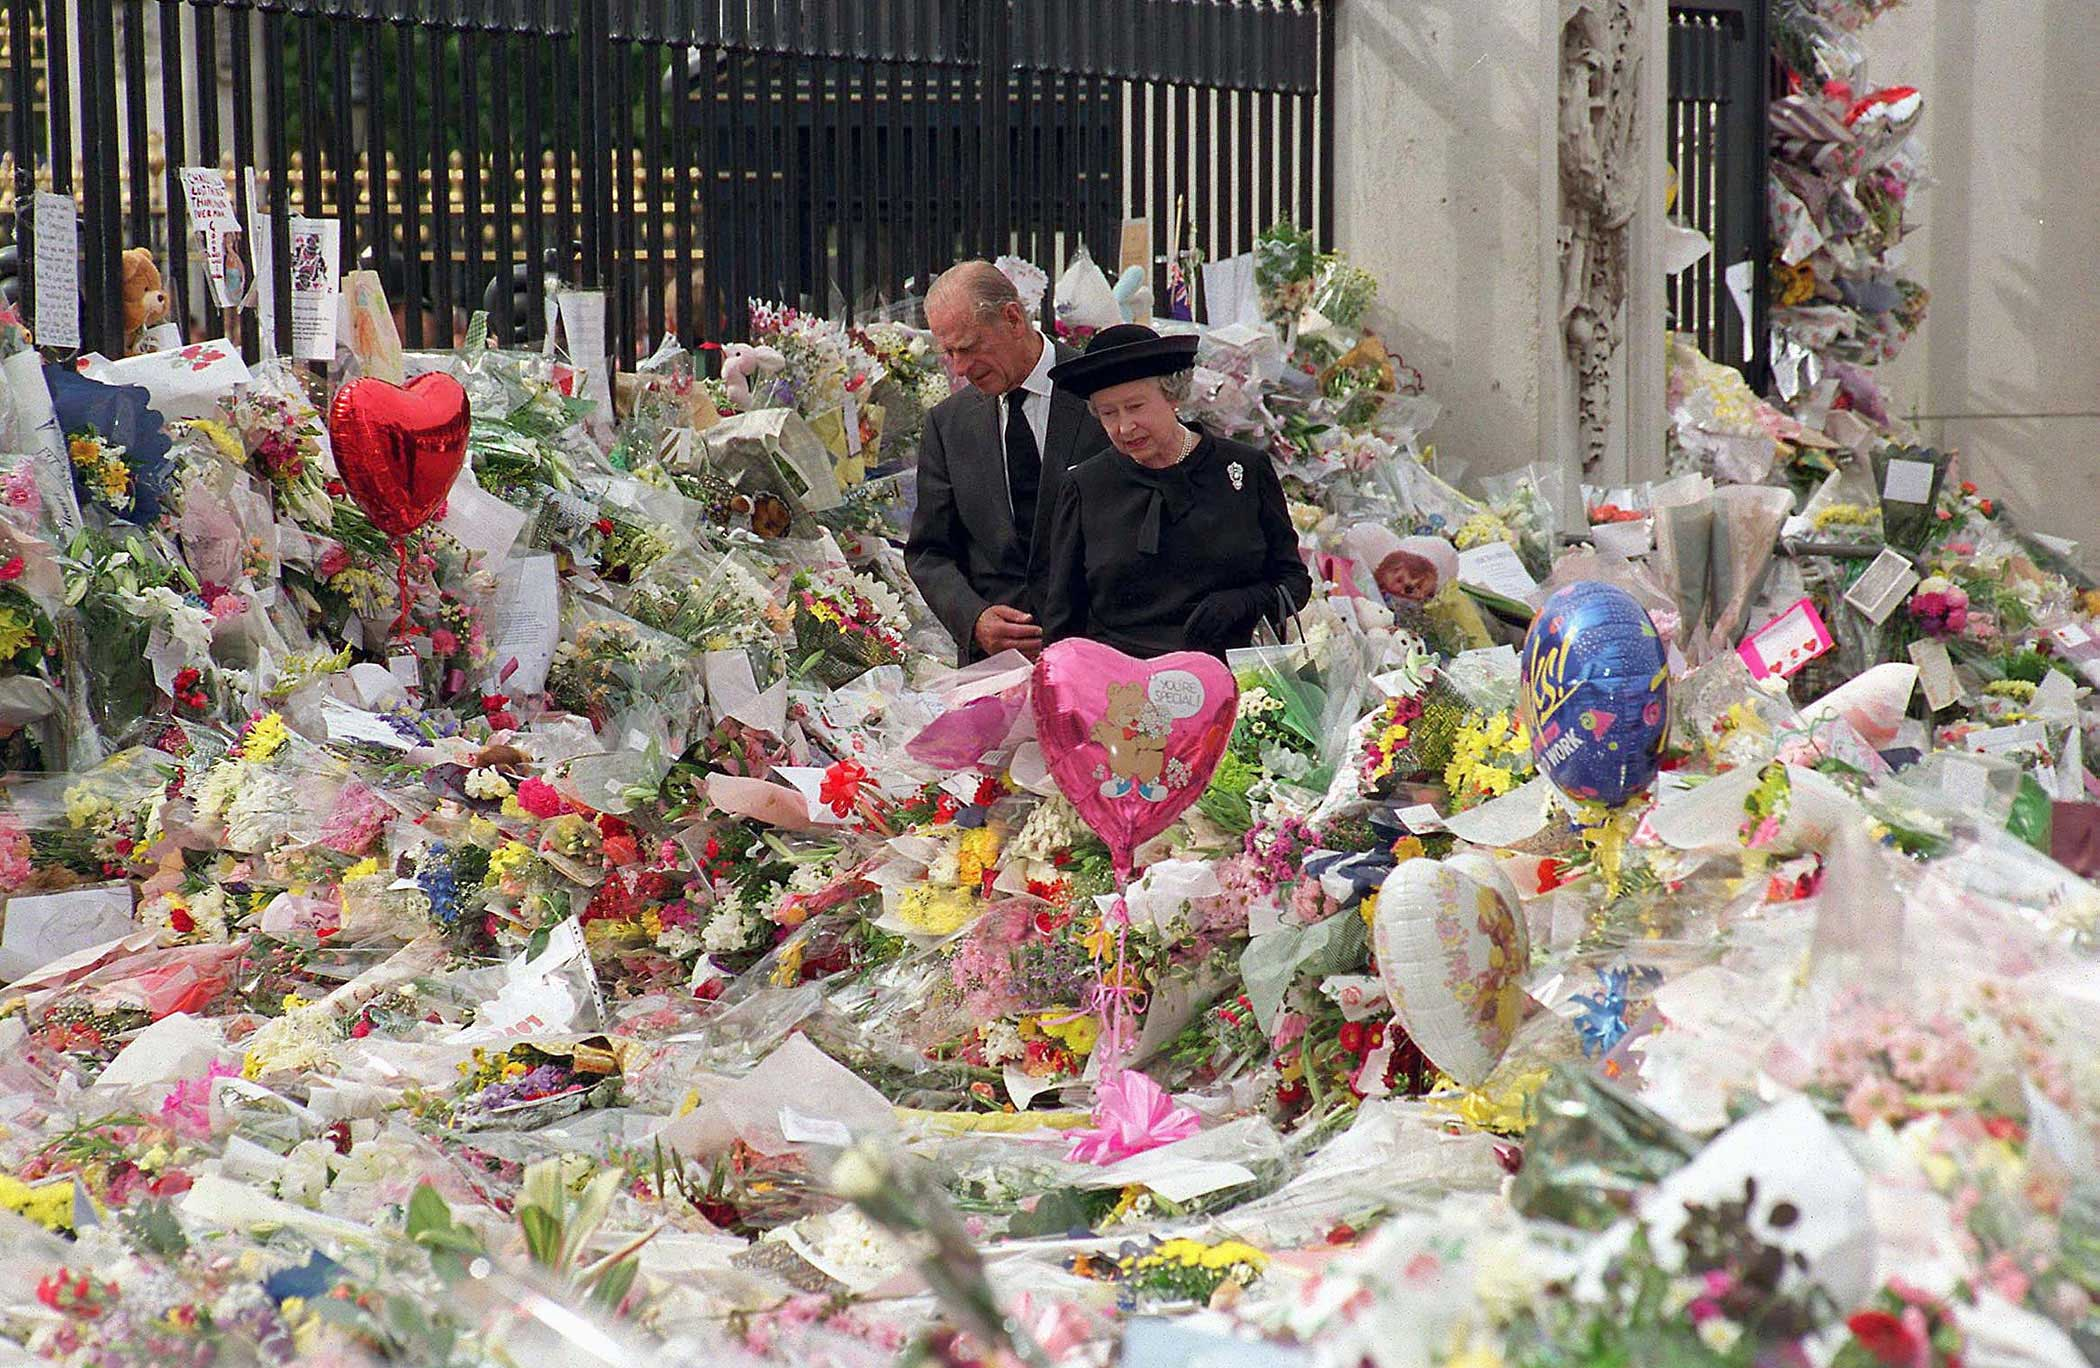 The Queen, along with Prince Philip, survey the flowers left in tribute to Diana, Princess of Wales, on Sept. 5, 1997, the eve of her funeral. Diana was killed in a car crash in Paris the week before, and although she was no longer married to Prince Charles, as the mother of Princes William and Harry, she was honored with a national public funeral.